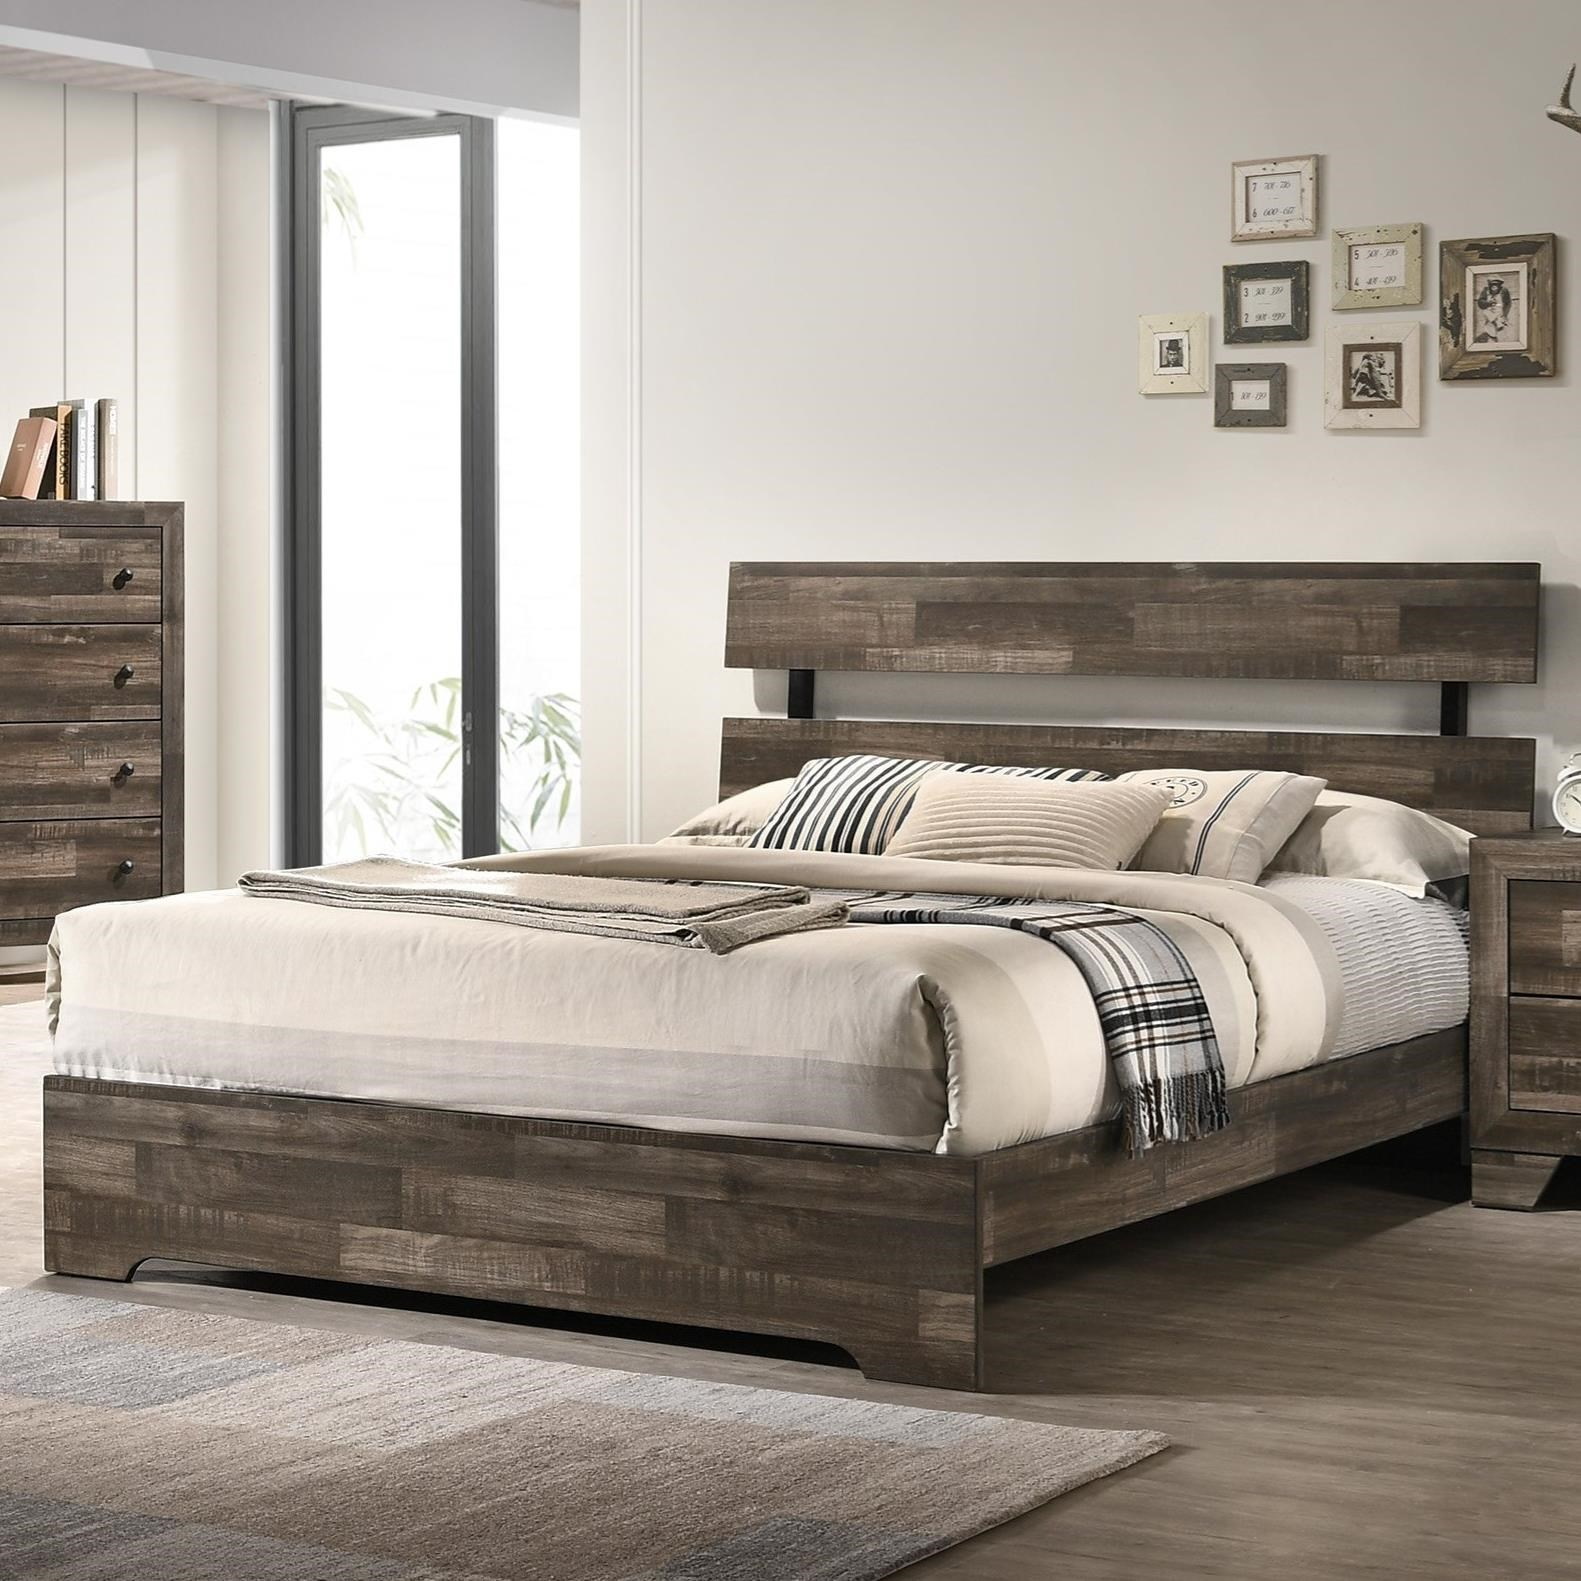 Atticus Queen Bed by Crown Mark at Northeast Factory Direct